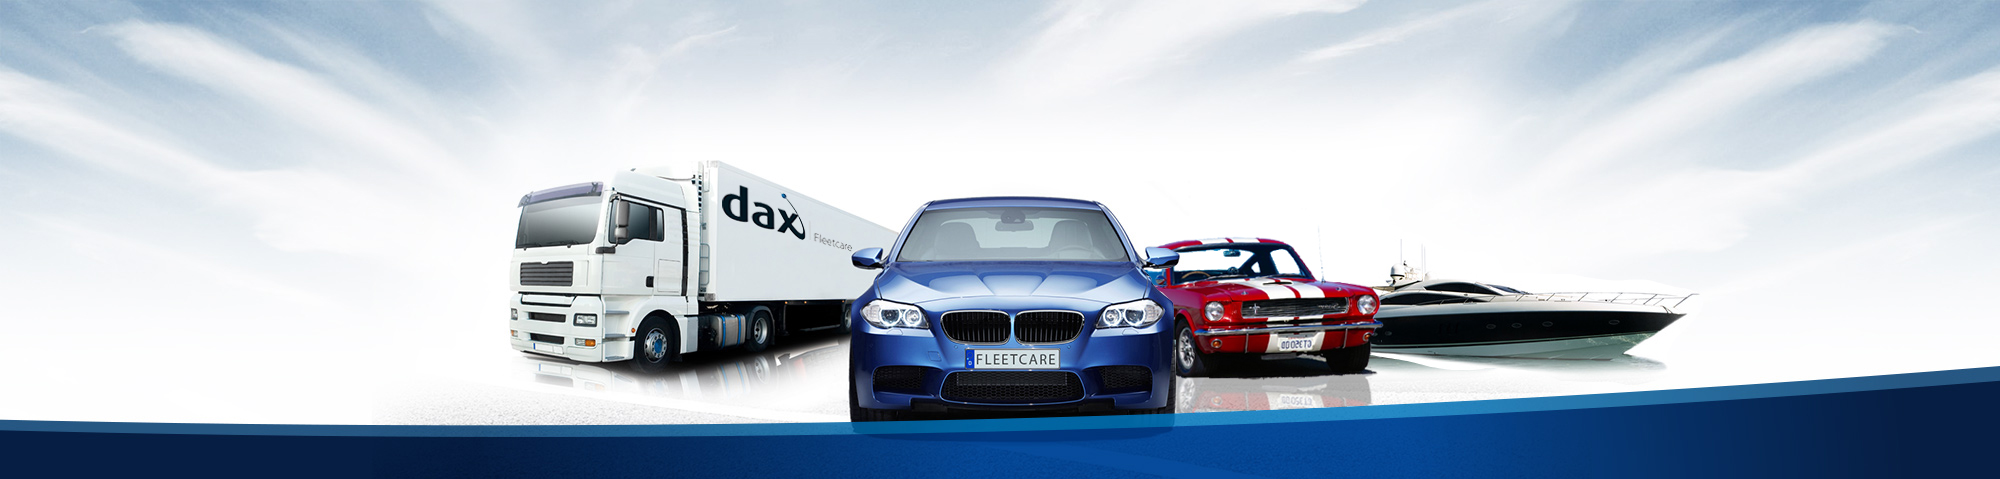 Mobile Car Solutions en Dax Fleet Car